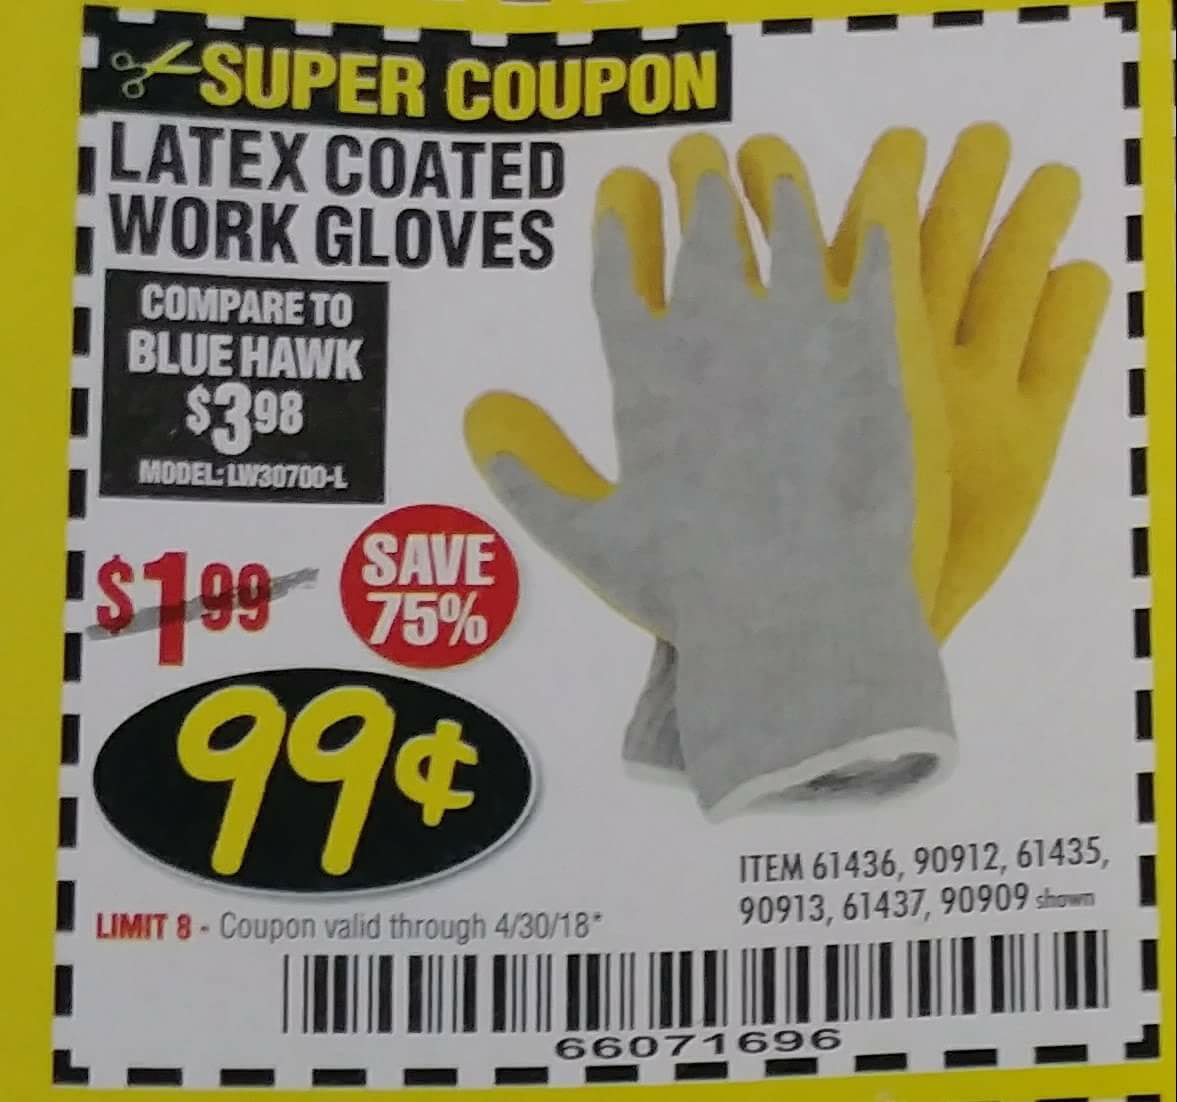 HARDY LATEX COATED WORK GLOVES Lot No. 90909/61436/90912/61435/90913/61437